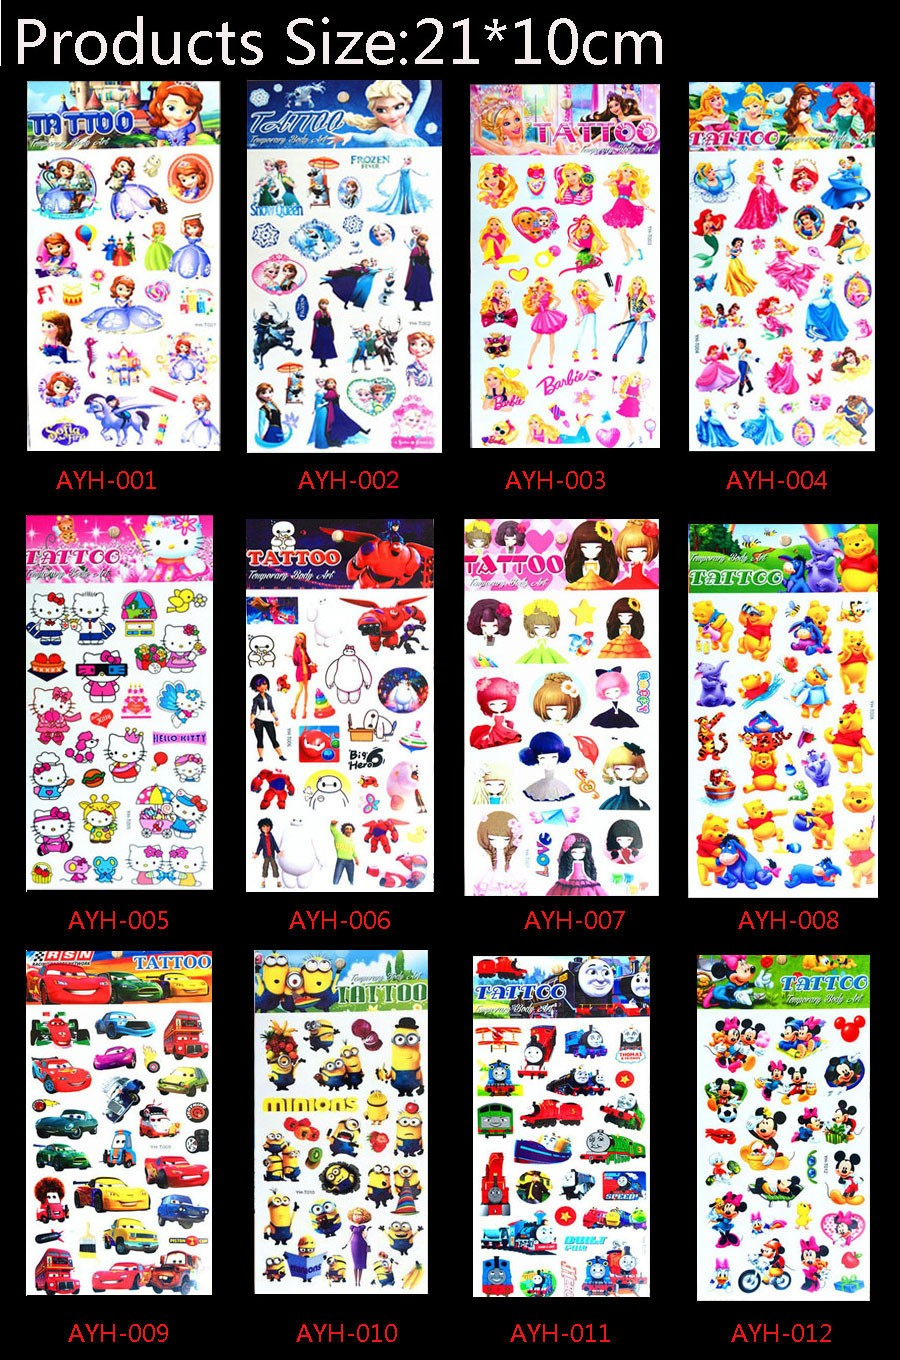 17 1pc Train Thomas And Friends Tattoo Stickers 21*10cm Kids Toy Cartoon Waterproof Anime Temporary Body Art Children Comics 10